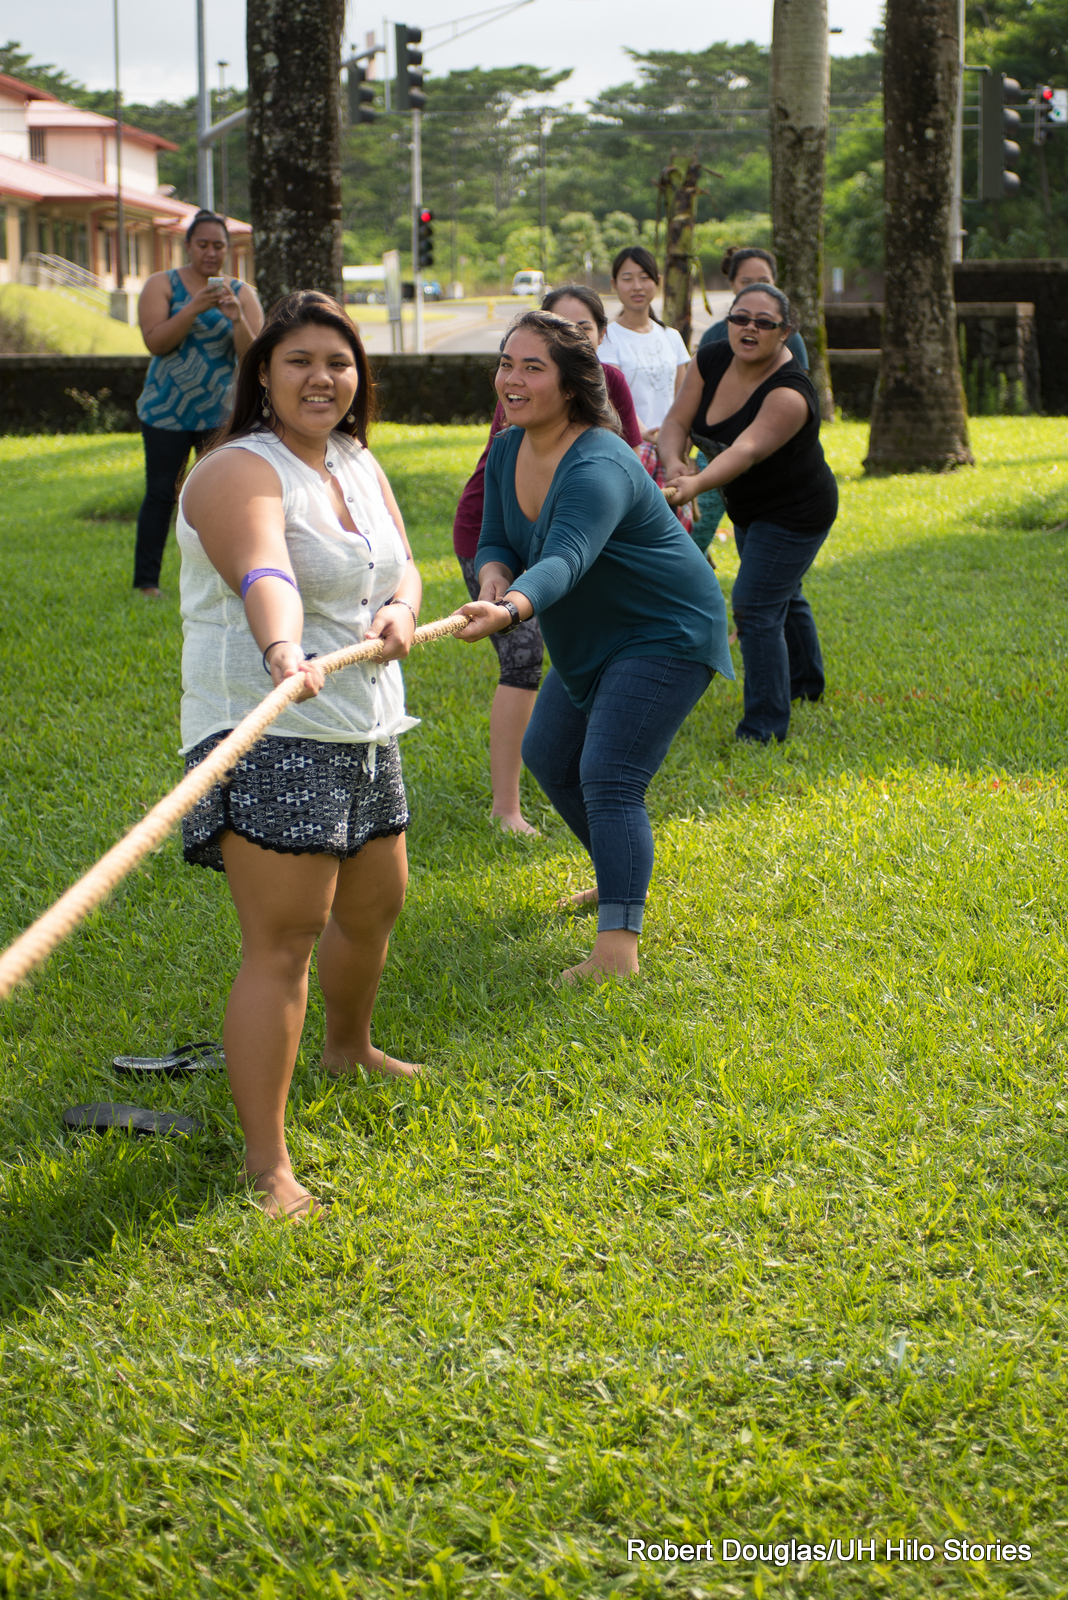 Women getting ready to pull rope.